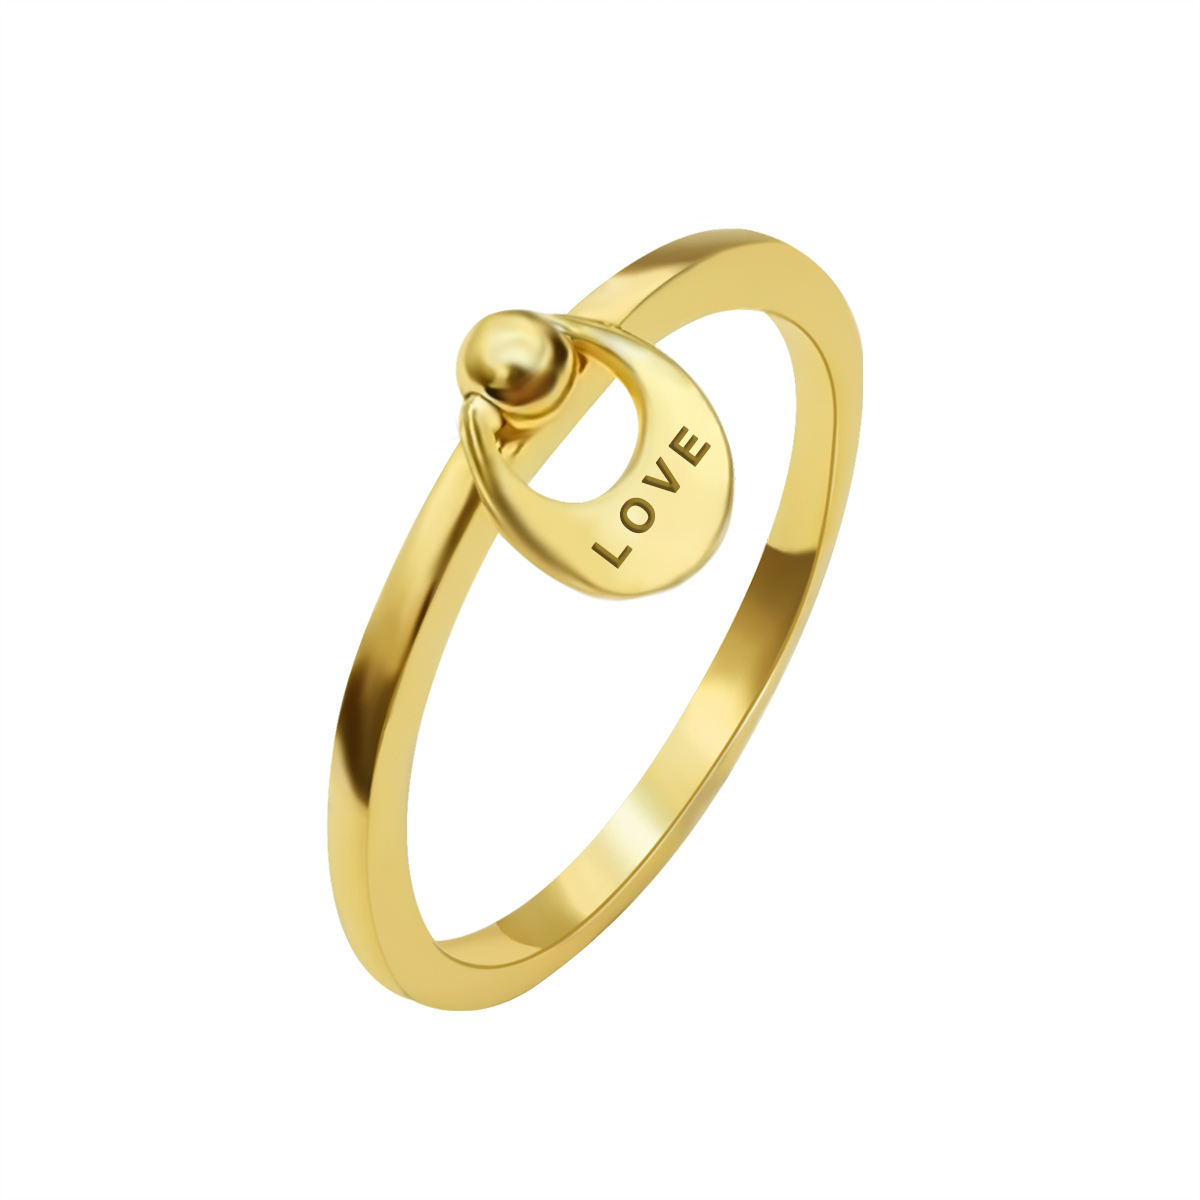 High Quality Wholesale Custom Cheap 18k Plated Gold Hollow-Out Circular With Letter Love 925 Sterling Silver Ring